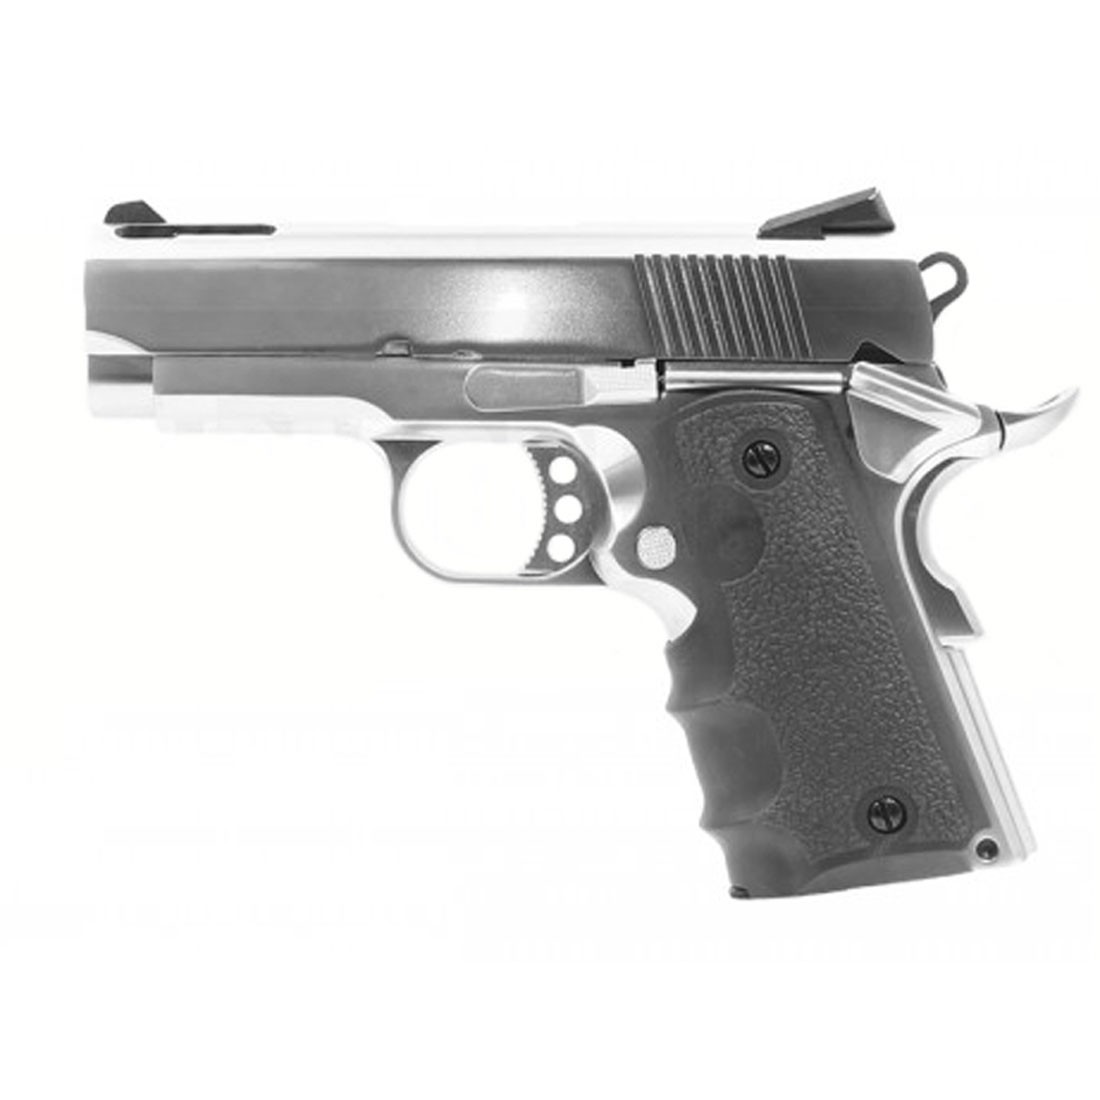 Armorer Works Custom 1911 Compact GBB Pistol - Silver